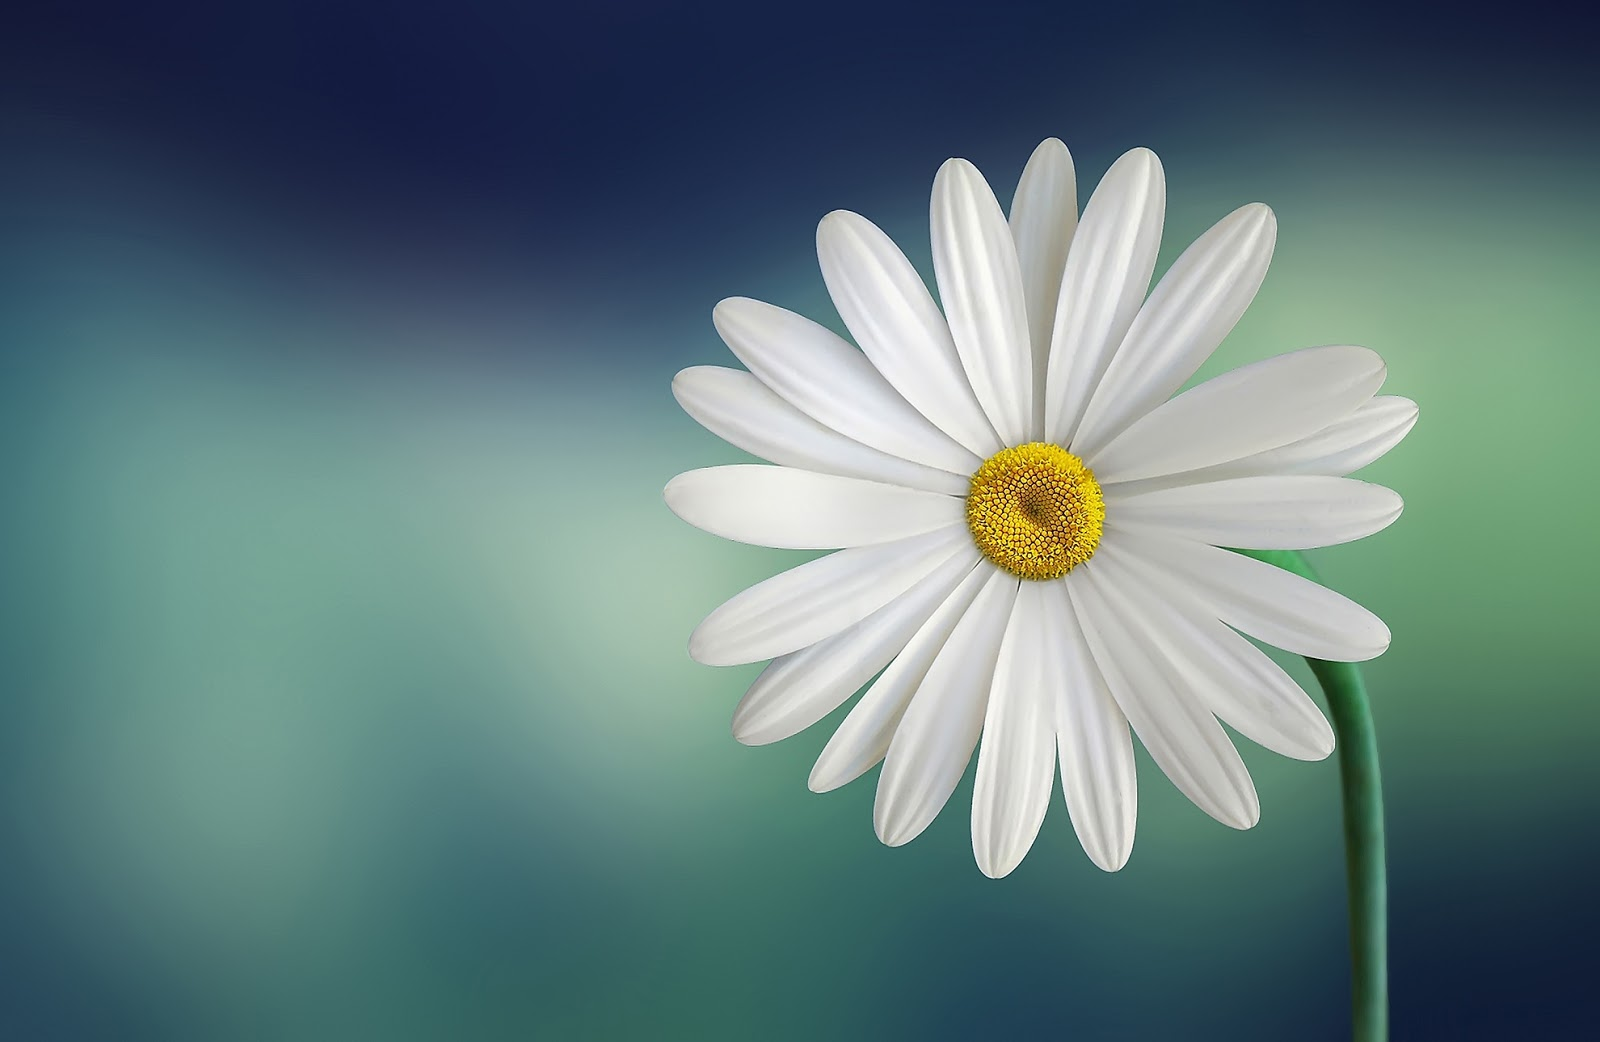 https://static.pexels.com/photos/36764/marguerite-daisy-beautiful-beauty.jpg